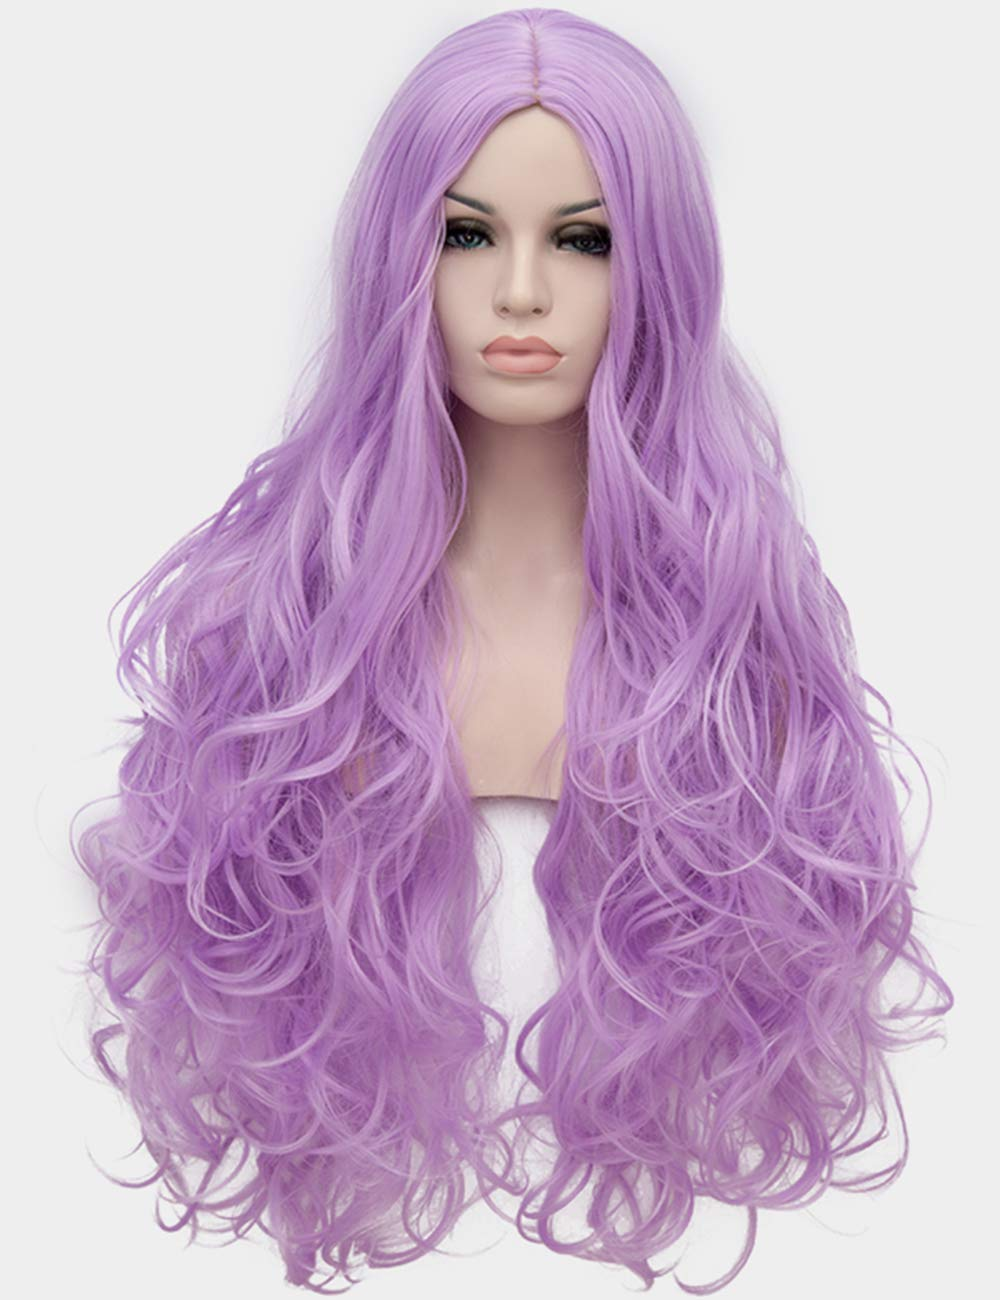 Amazon.com  OneUstar Women Purple Wavy Wig Long Curly Cosplay Wig for  Costume Party Fancy Dress with Wig Cap 31 inch  Beauty 997569218